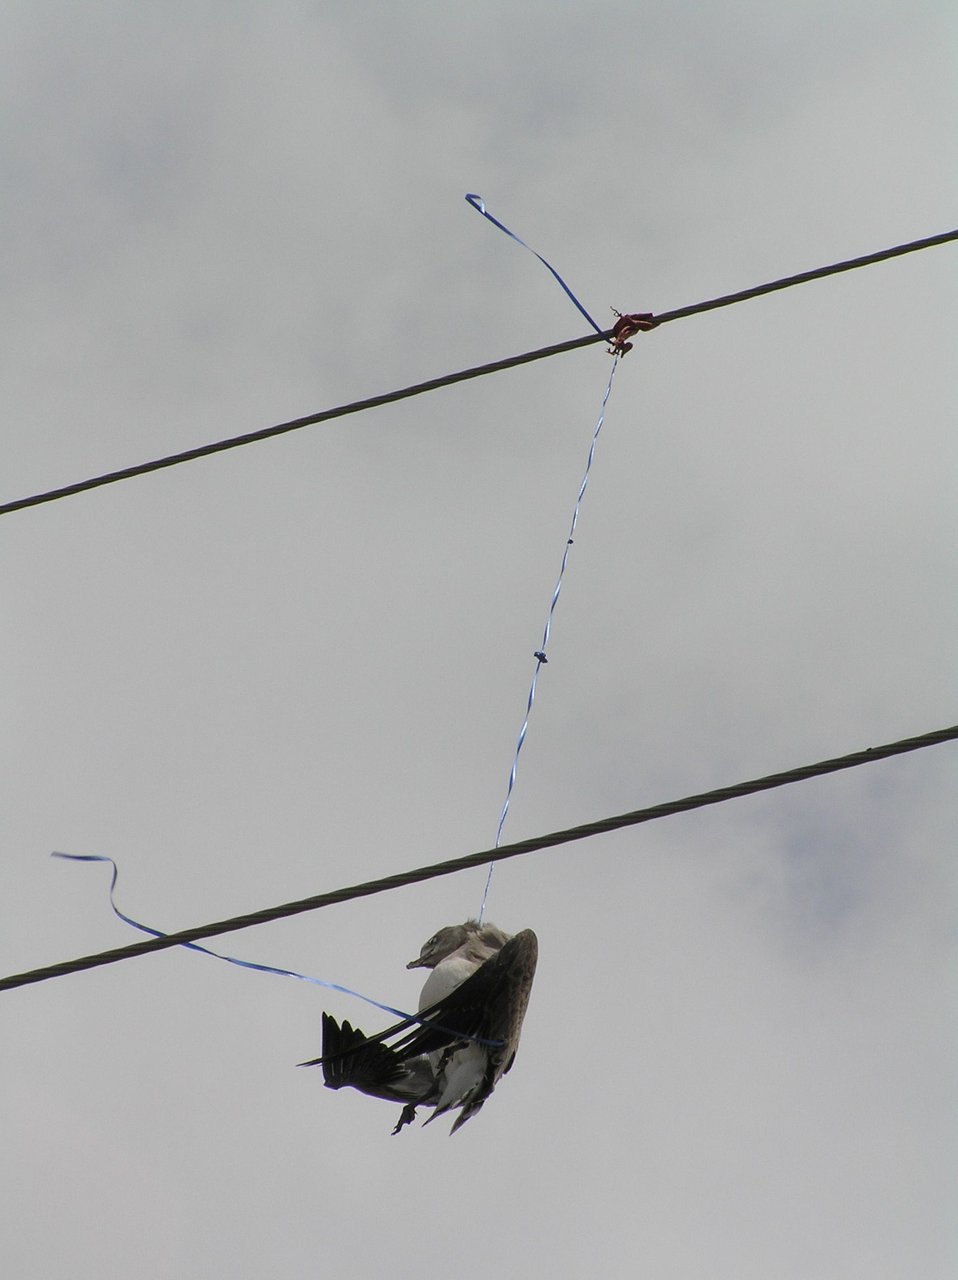 Laughing gull caught in balloon string